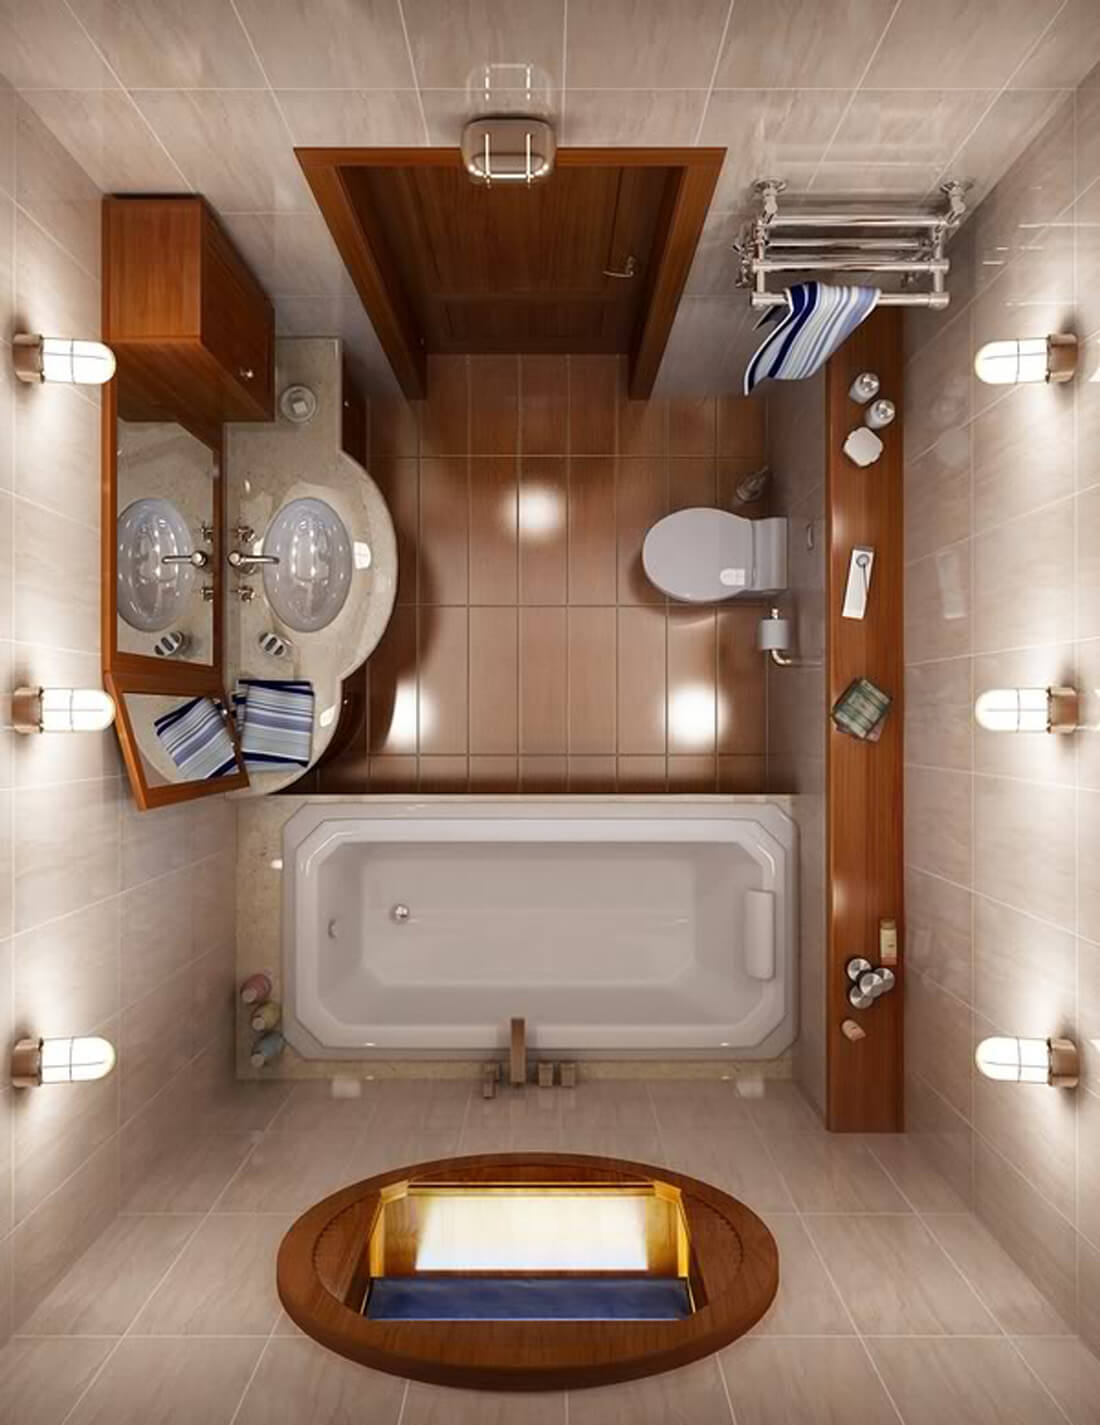 Brilliant Ideas For A Small Bathroom You Can Try Today - Small bathroom remodel with tub for small bathroom ideas